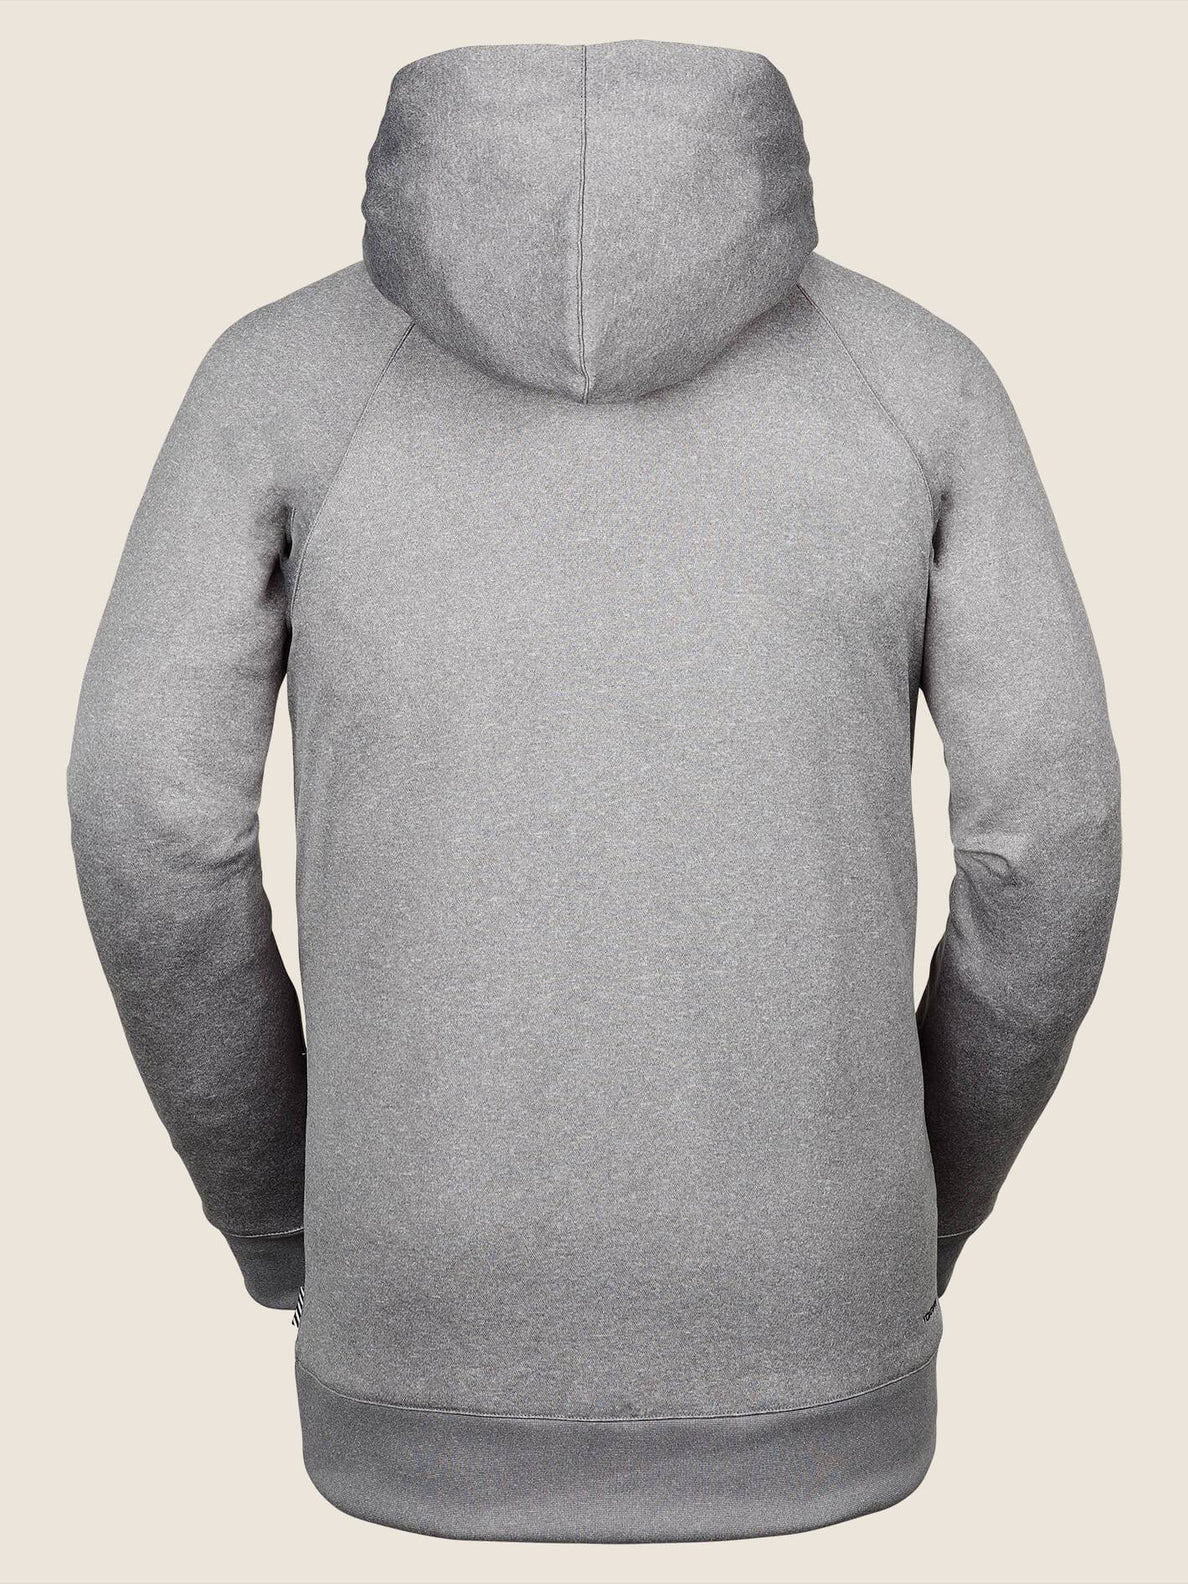 Hydro Riding Hoodie - Heather Grey